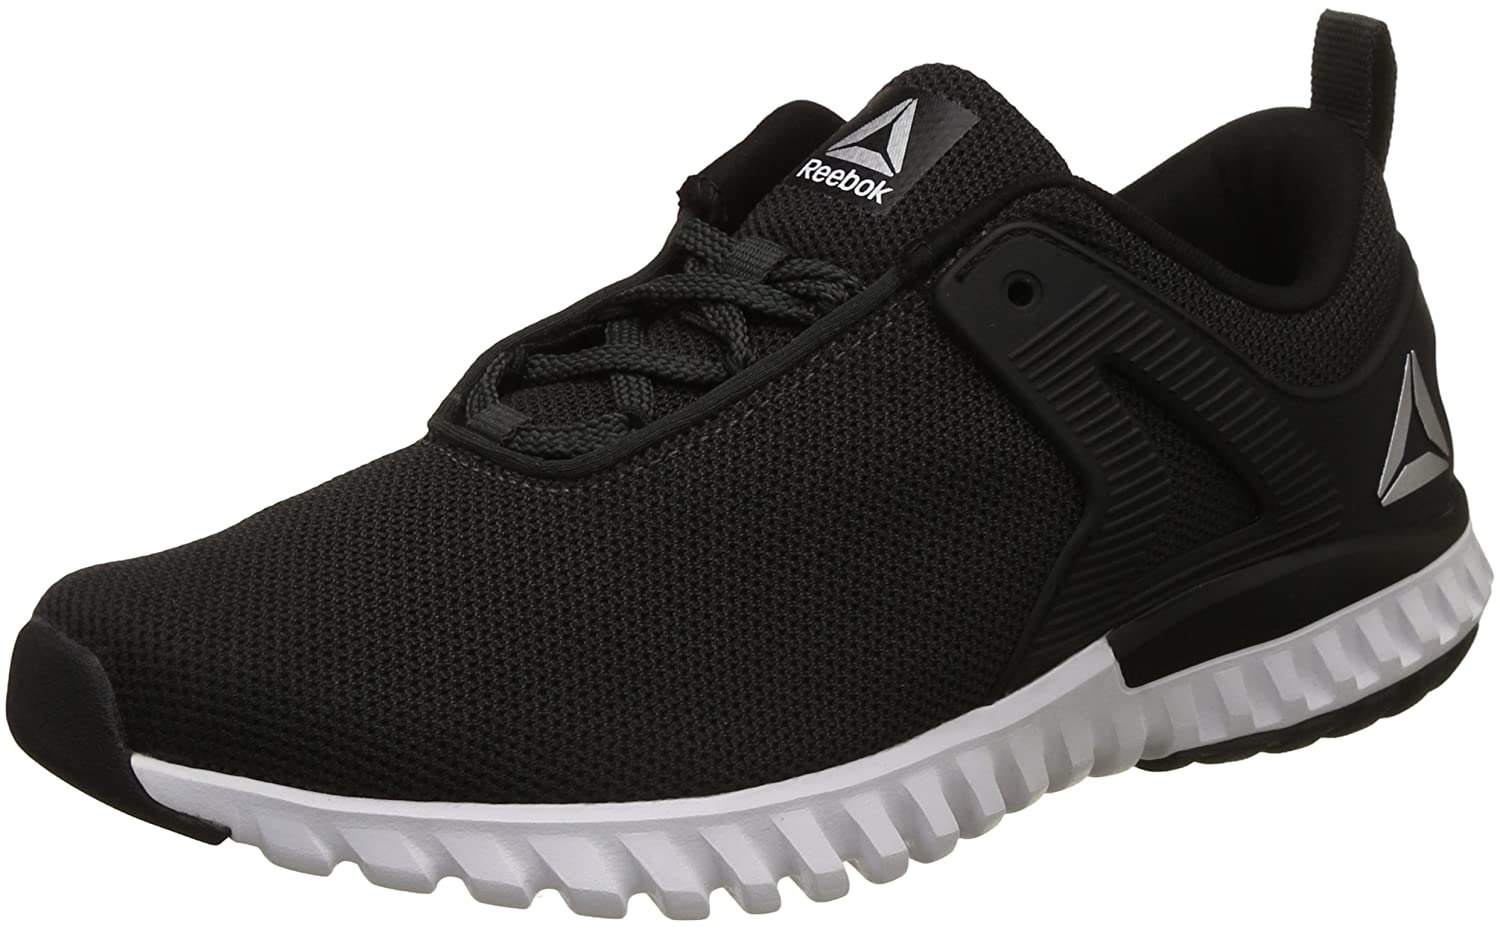 bfdbb09e9d4732 Reebok Men s Glide Runner Running Shoes  Buy Online at Low Prices in India  - Amazon.in